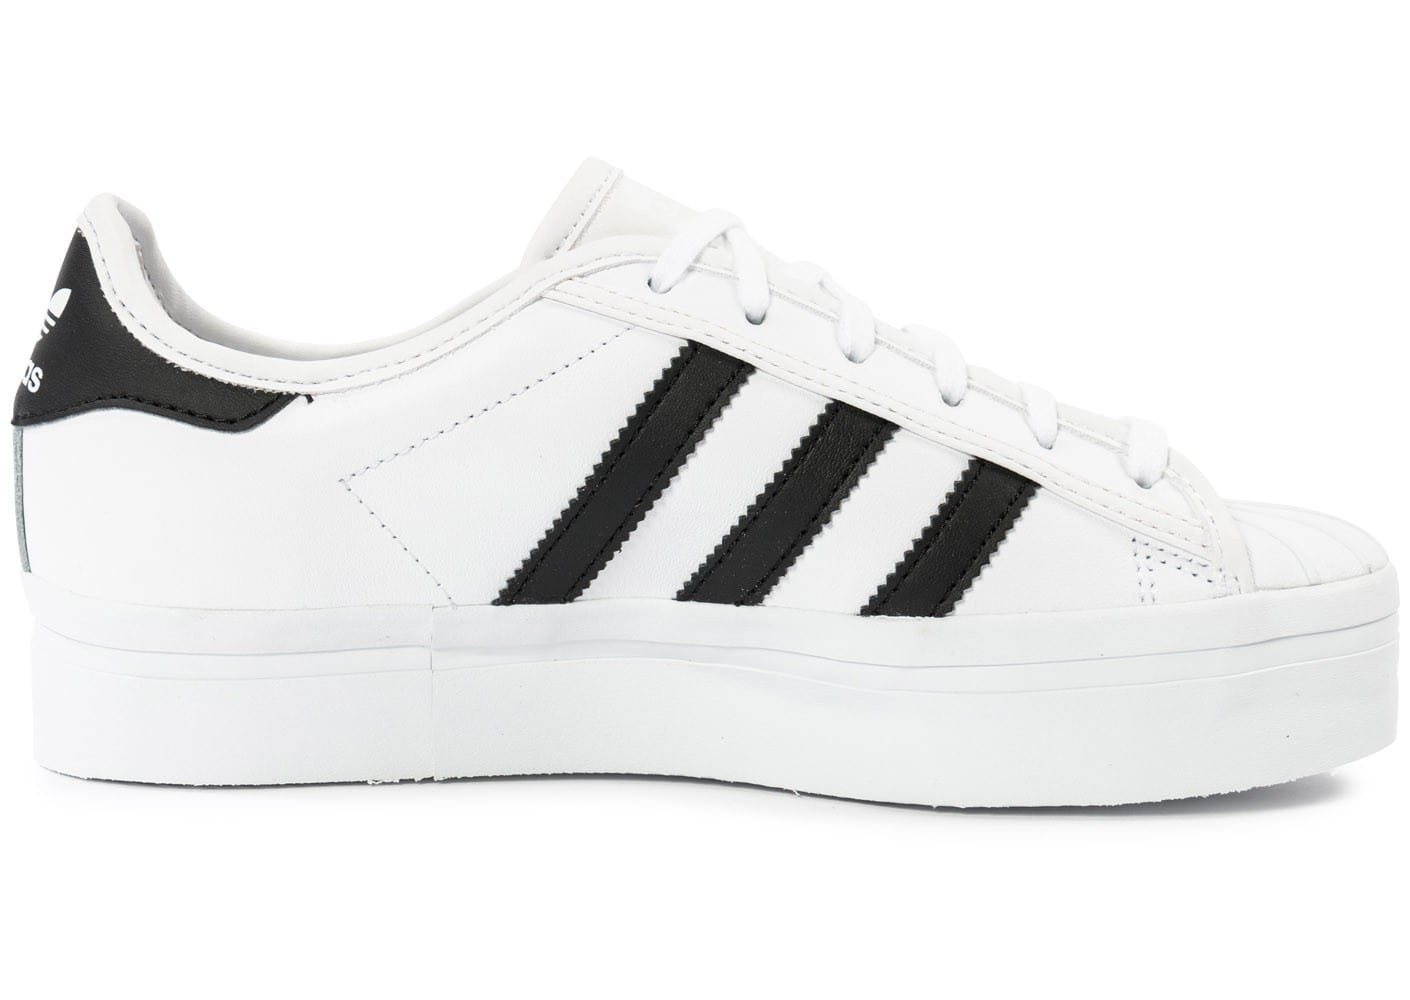 Plateforme Blanche Chausport Rize Adidas Superstar Chaussures WH2E9ID